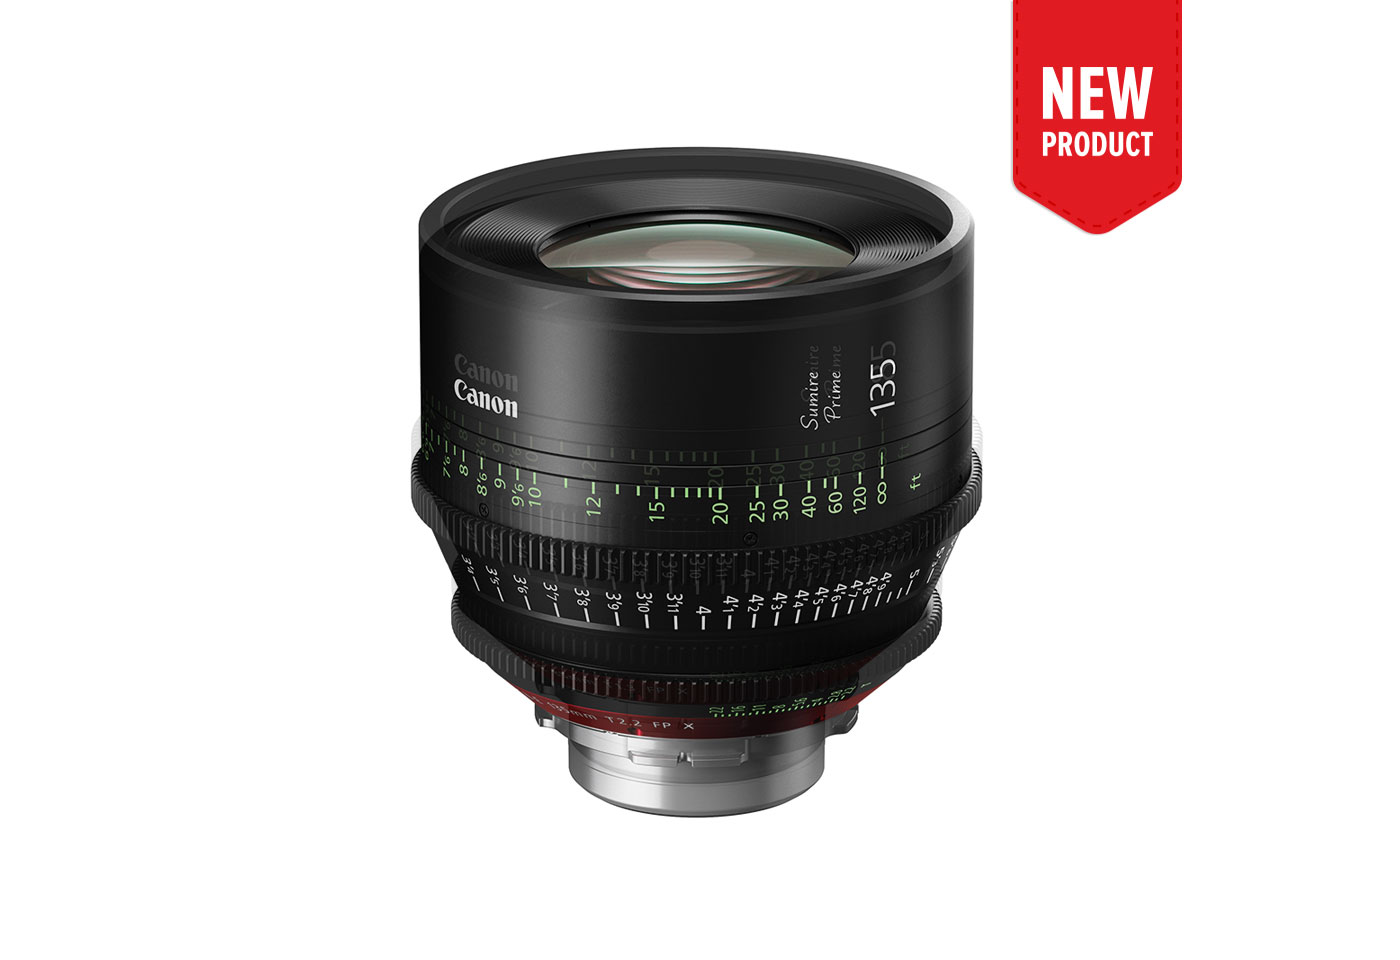 Product image of CN-E135mm T2.2 FP X